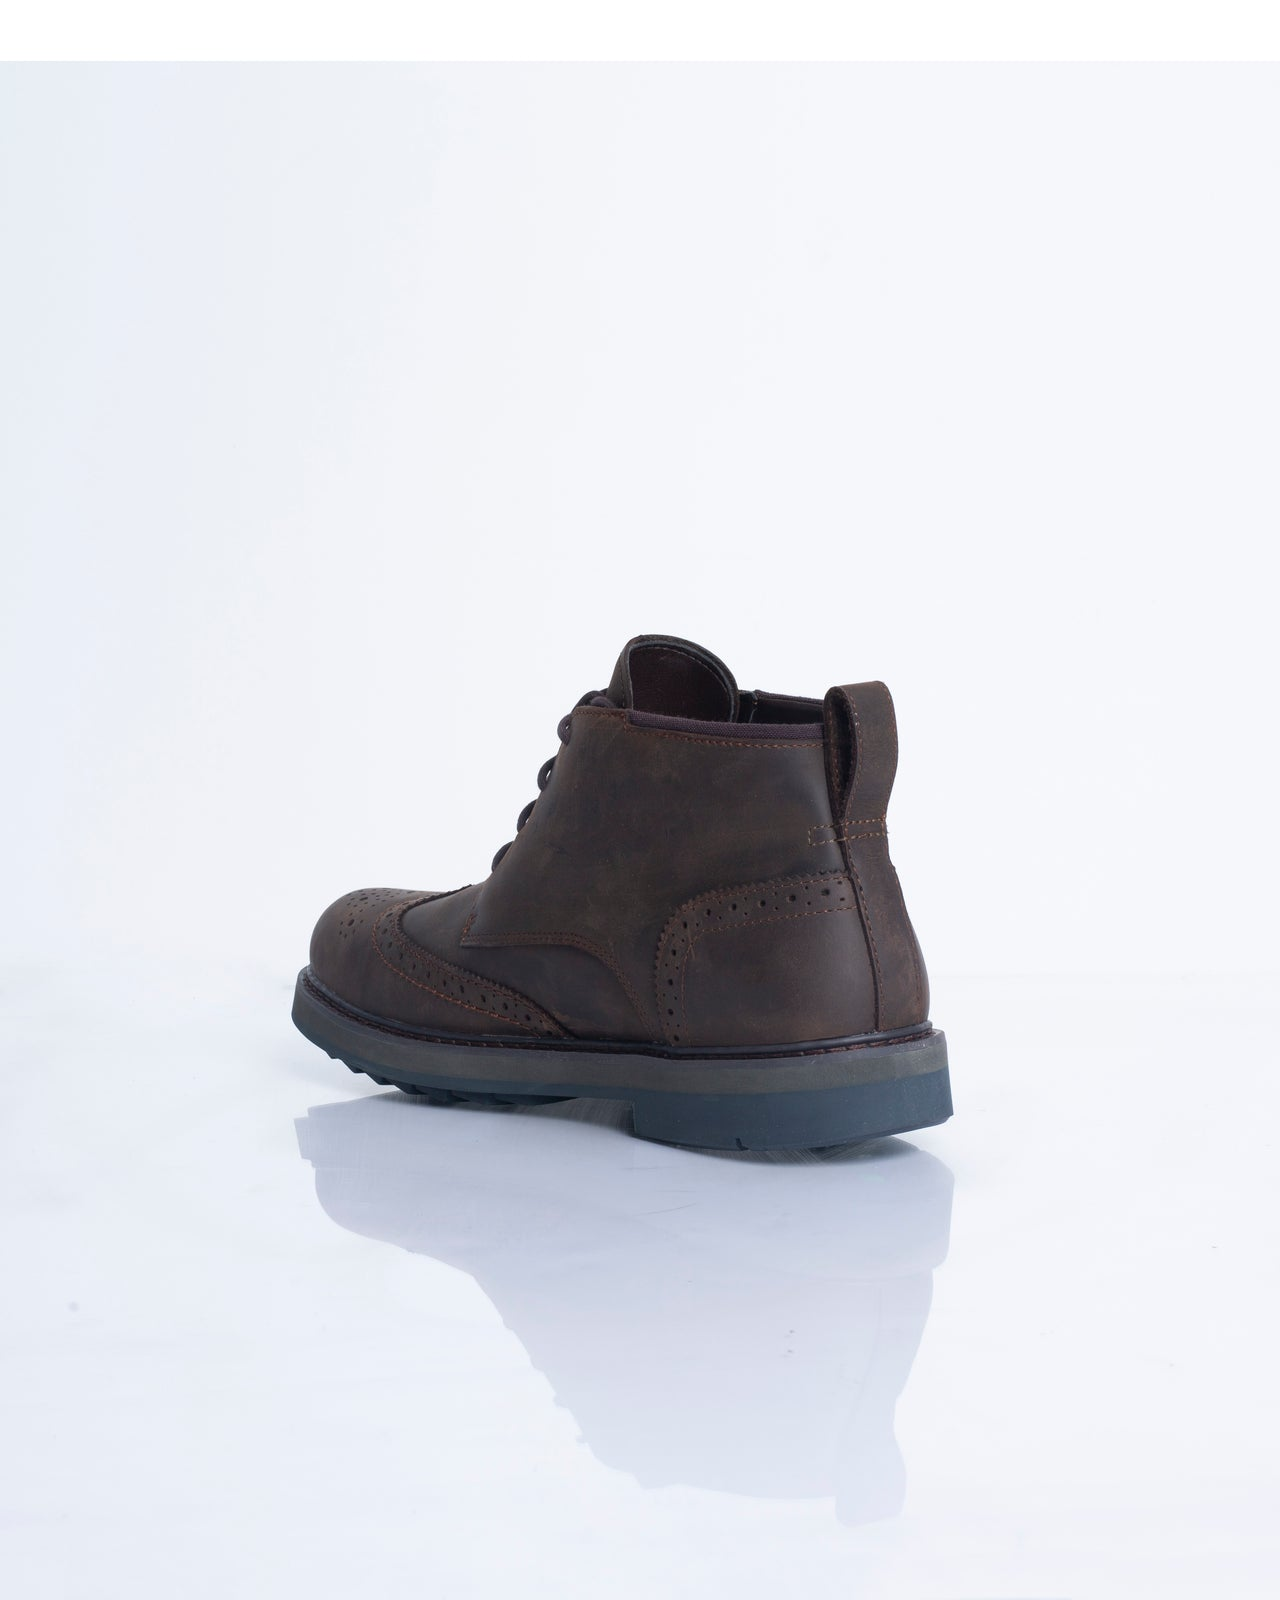 Squall Canyon Wingtip Chukka - Color: Dark Brown Full Grain | Brown